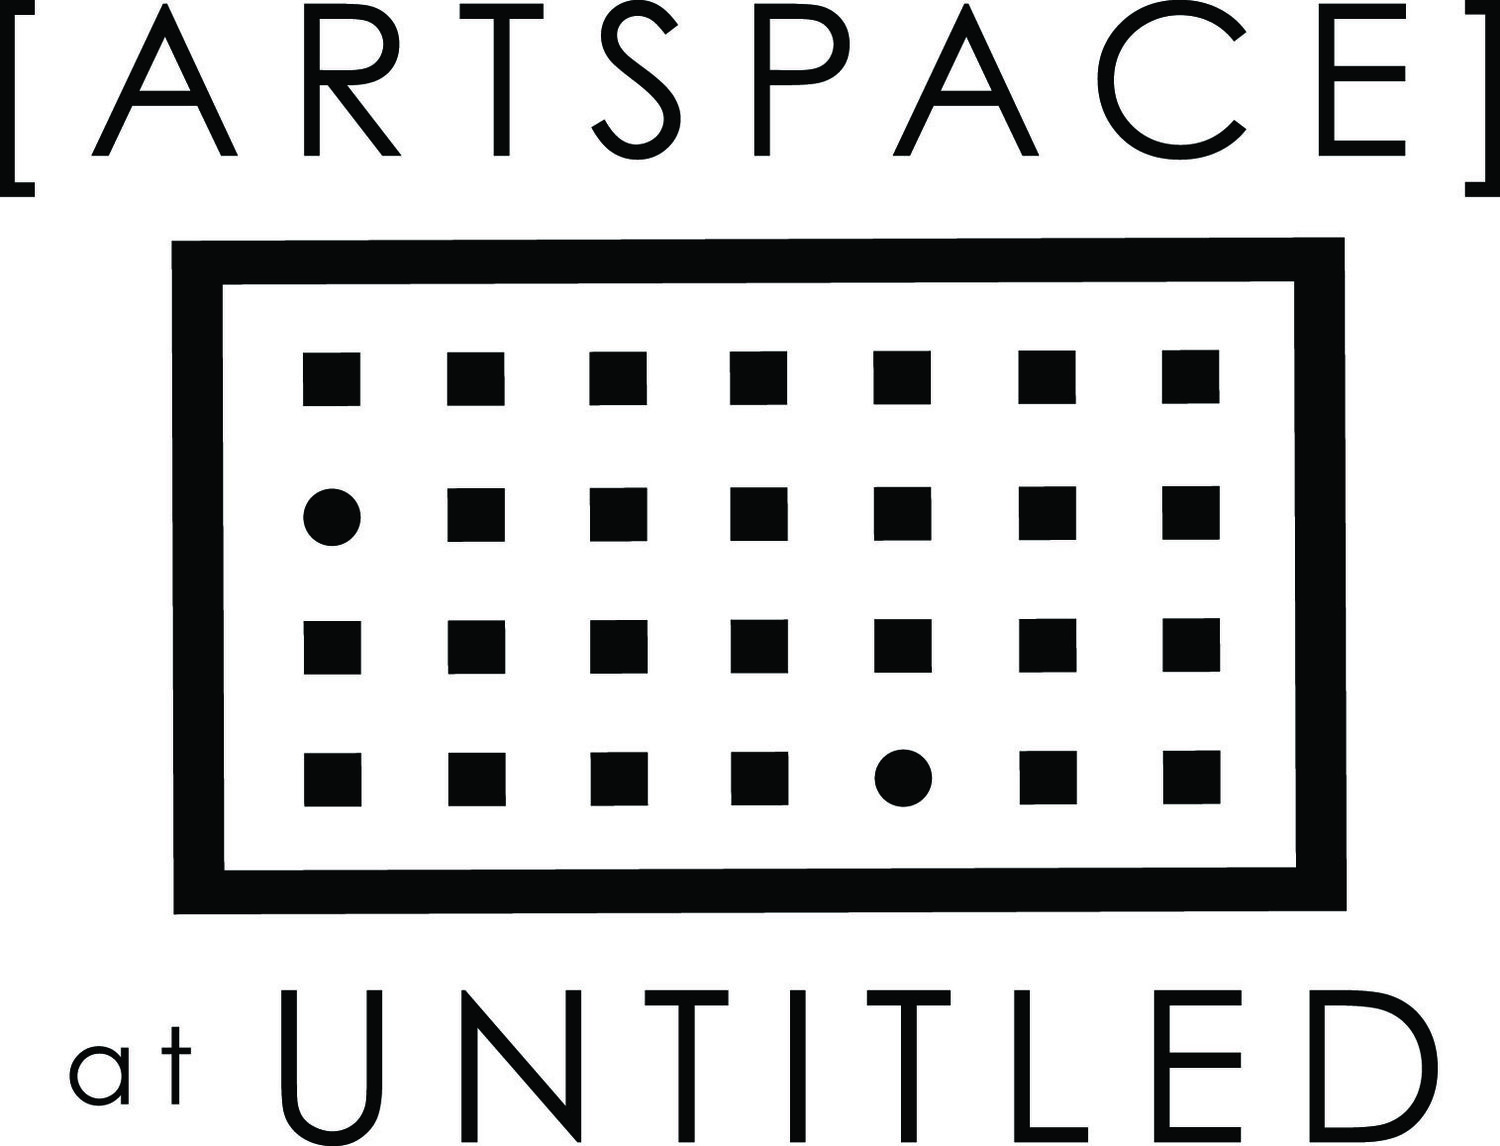 [Artspace] at Untitled